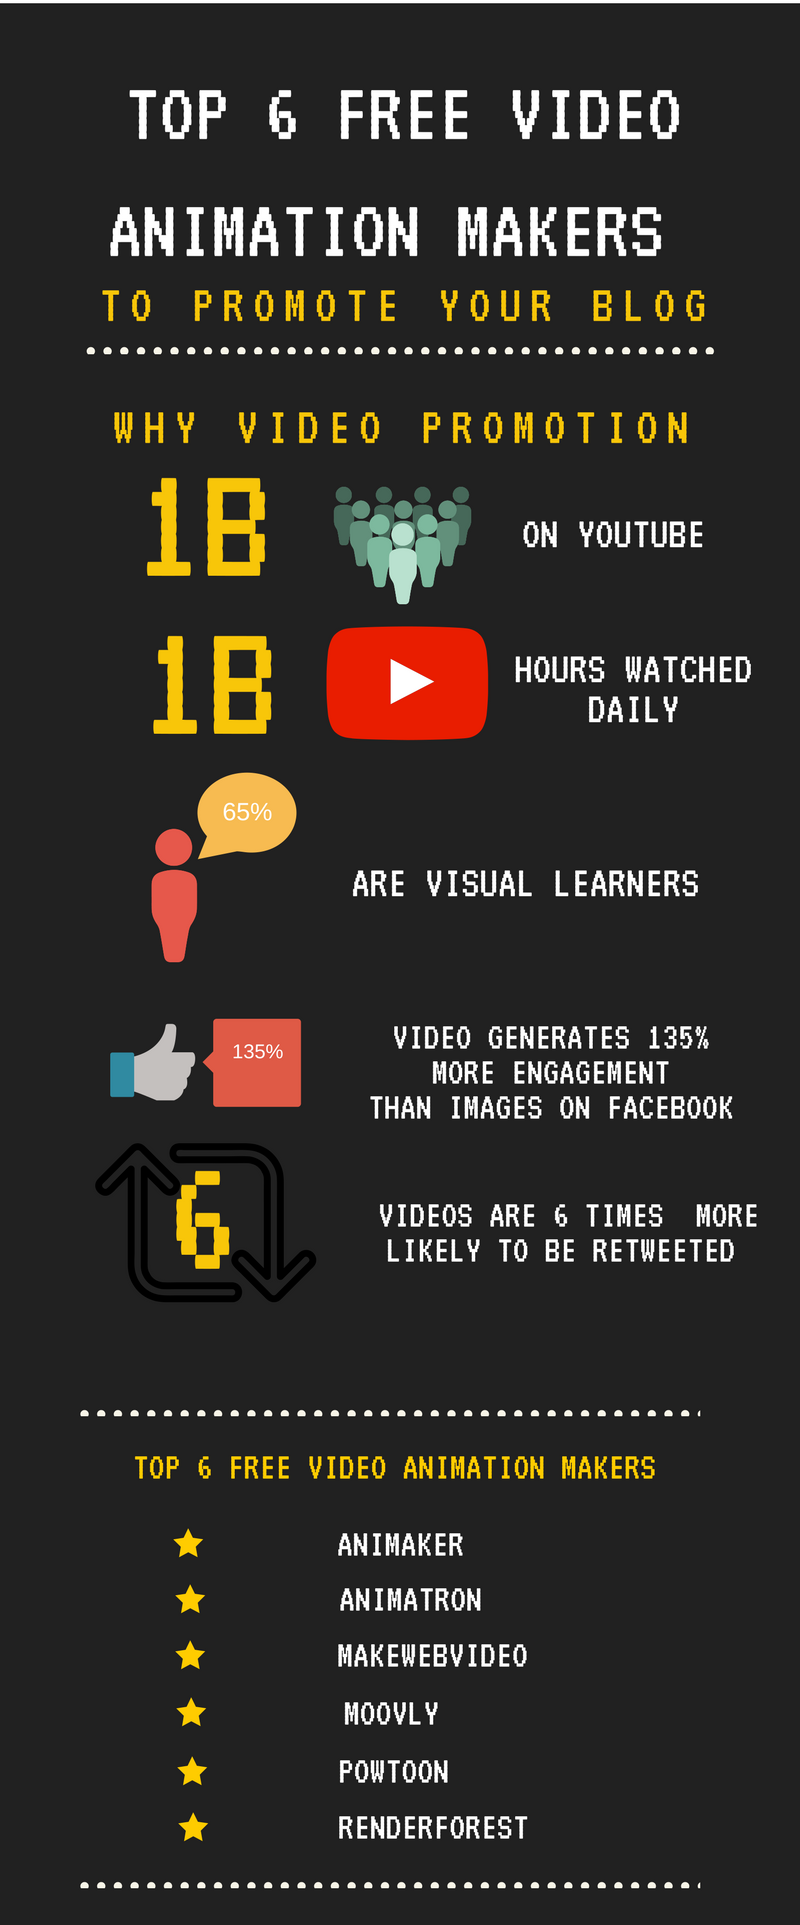 Top 6 Free Video Animation Makers Infographic